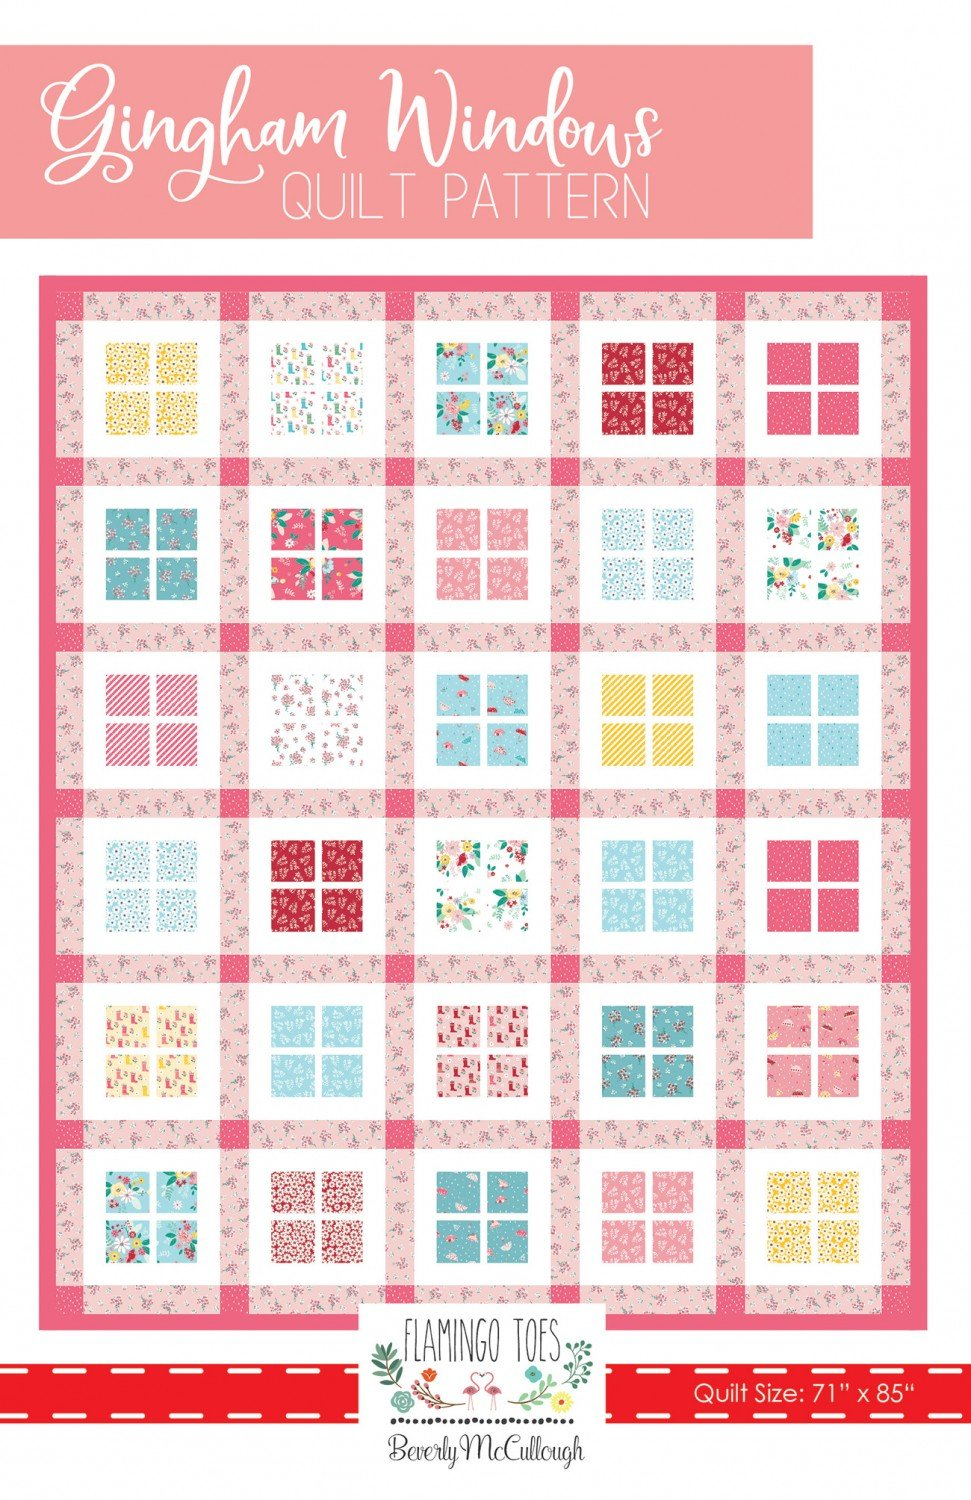 Gingham Windows Quilt Pattern